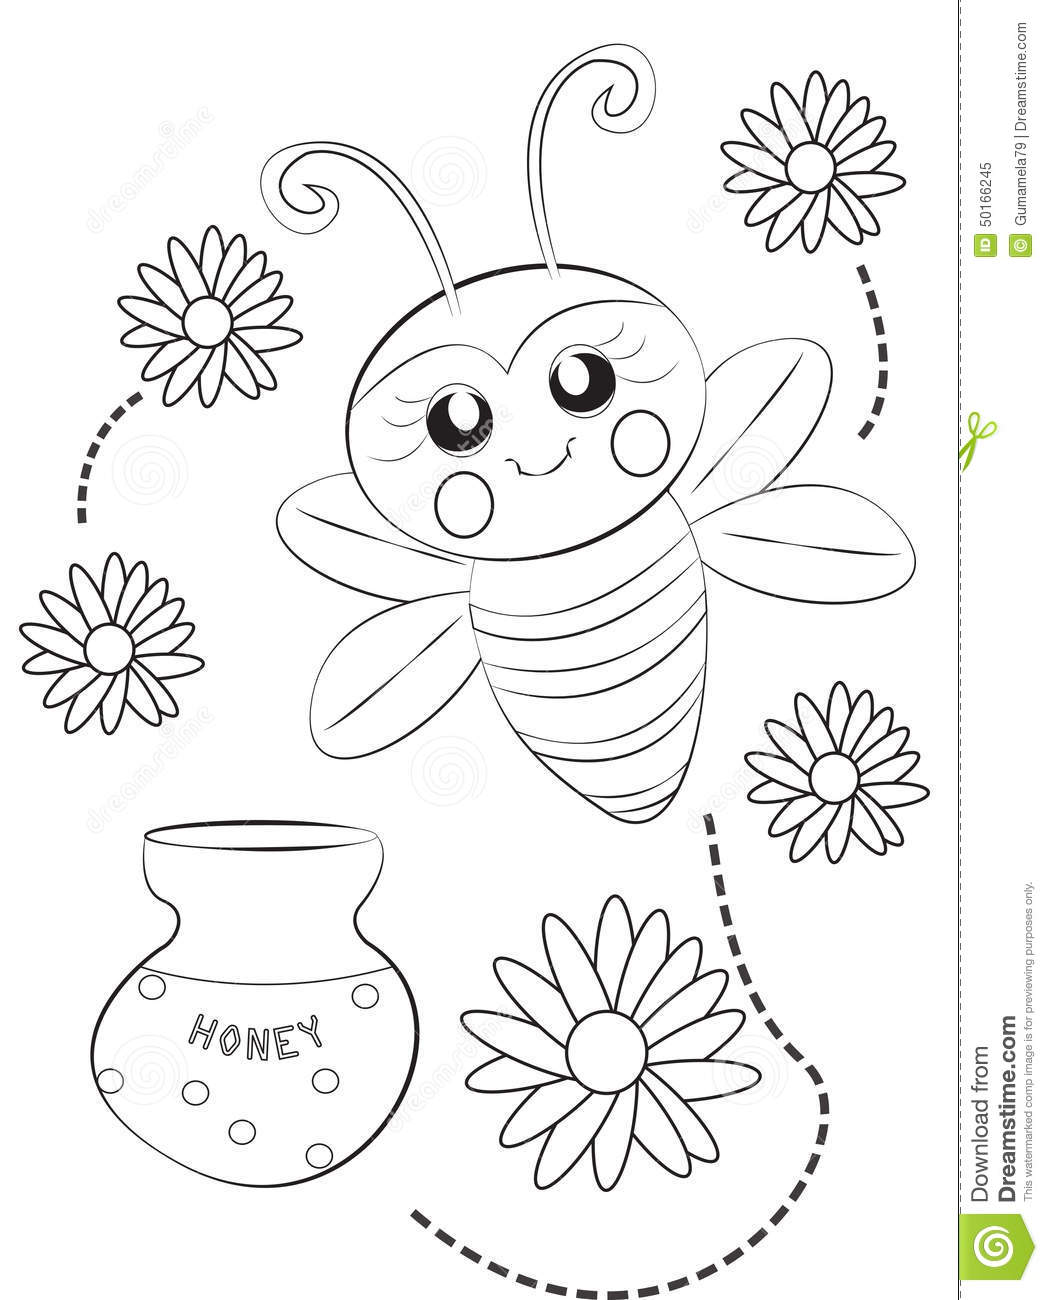 Bee Coloring Page Stock Illustration Image 50166245